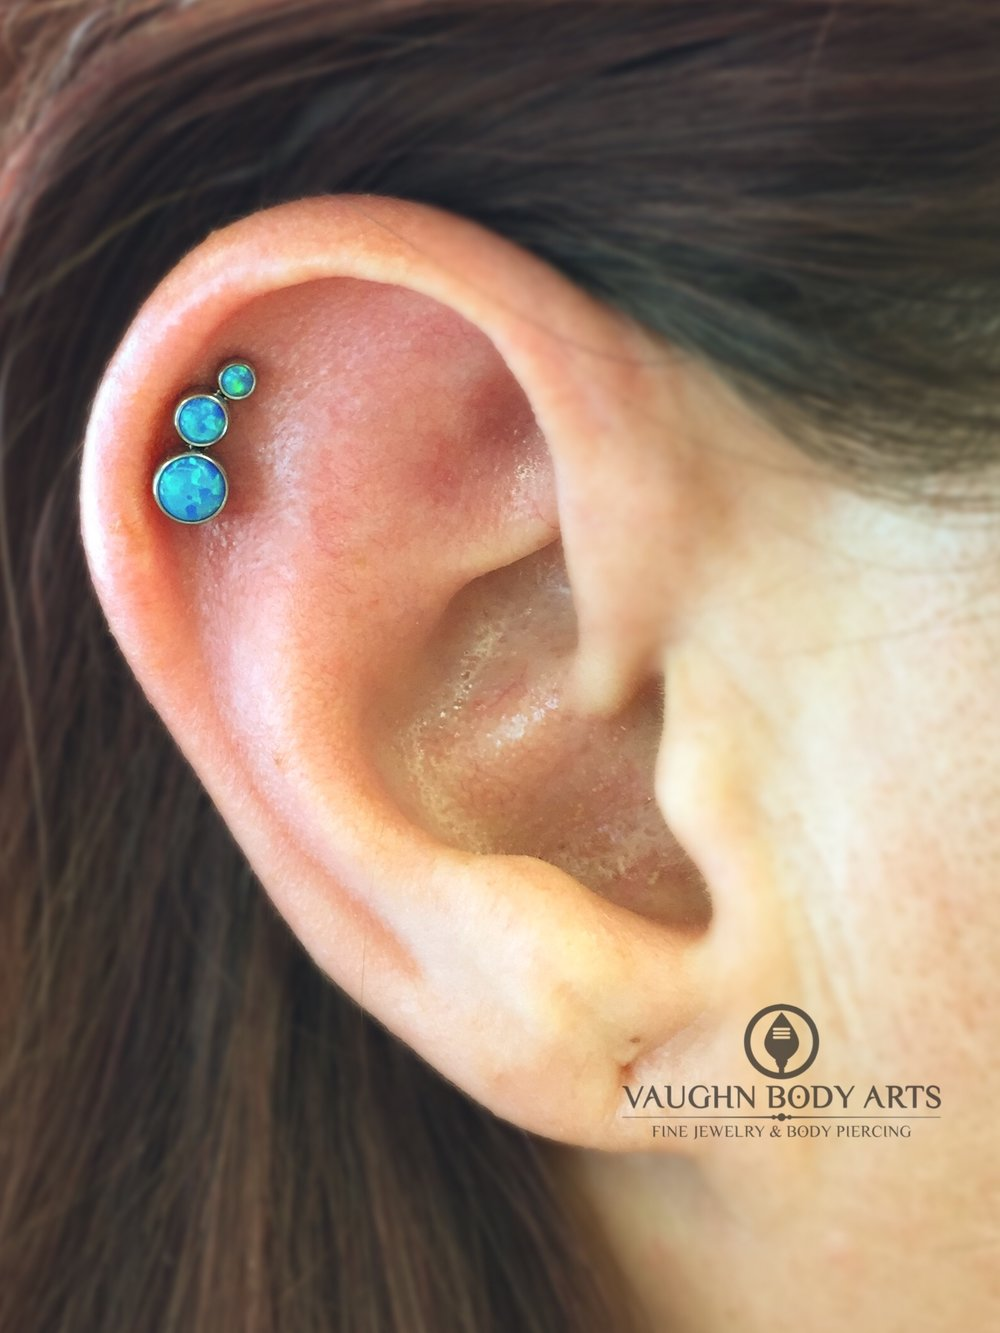 Helix piercing with titanium jewelry from Anatometal.